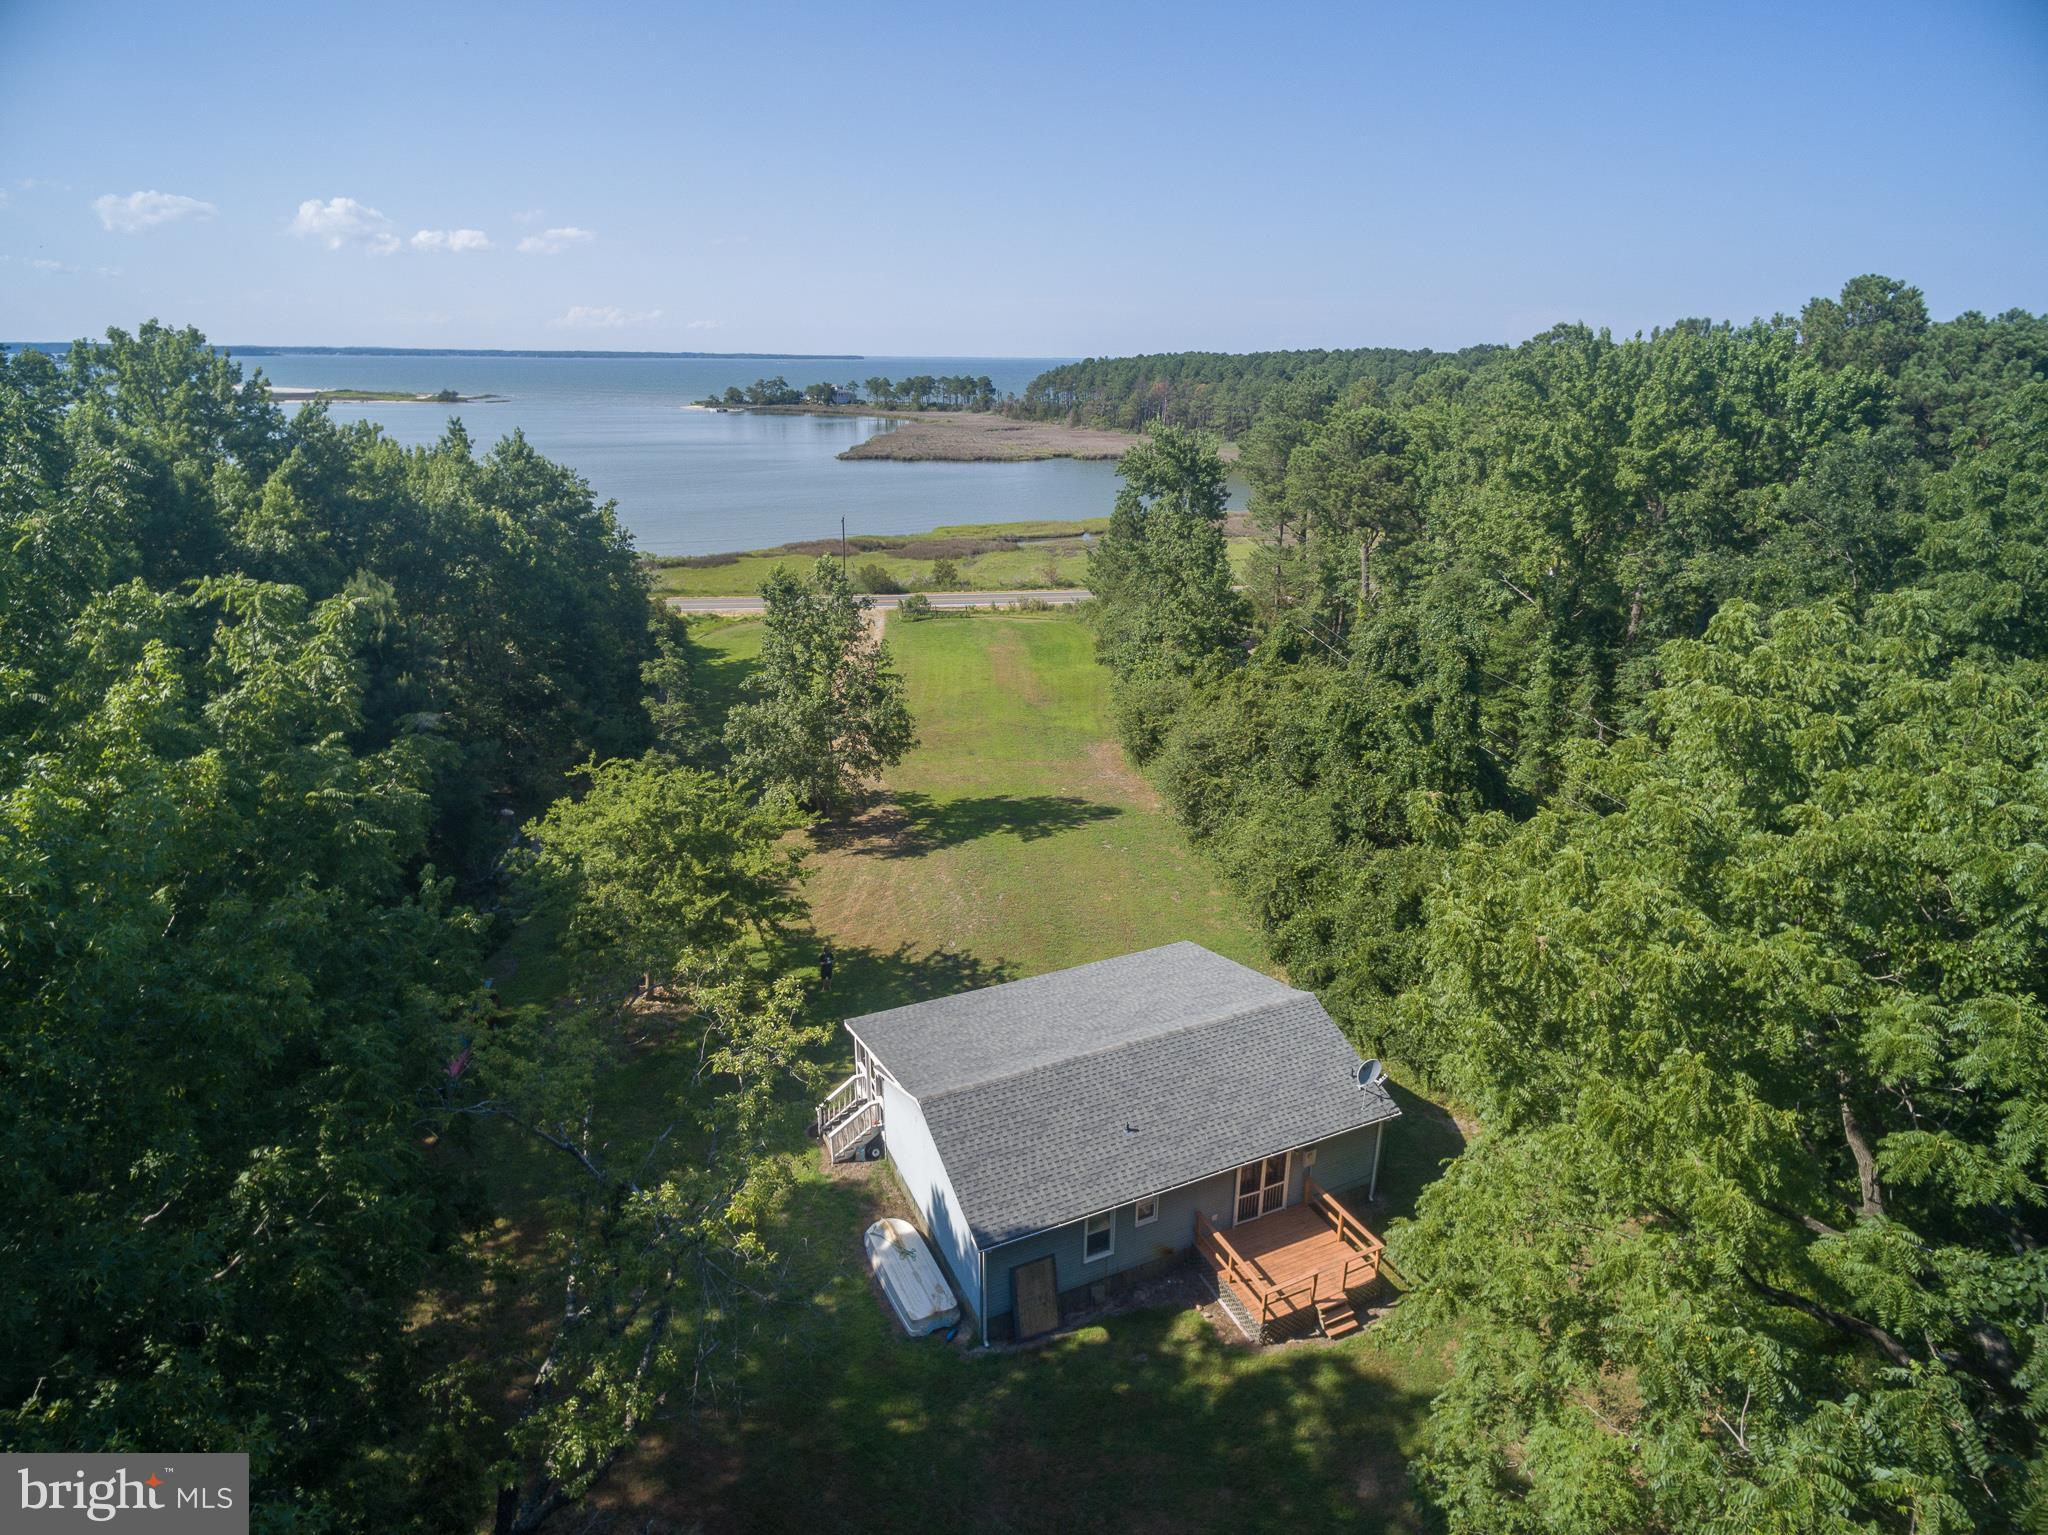 5450 WINDMILL POINT ROAD, WHITE STONE, VA 22578